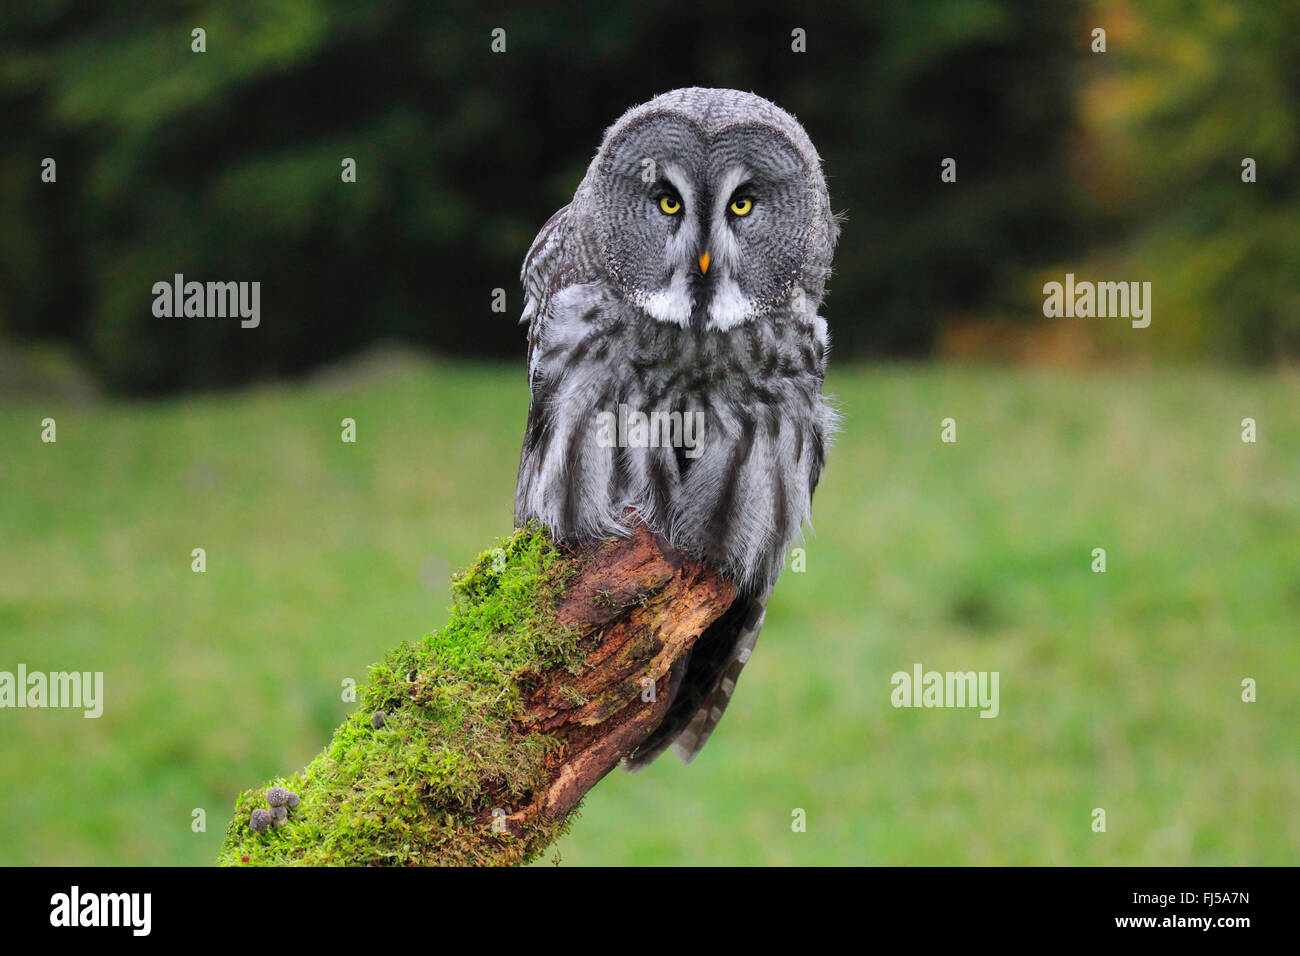 great grey owl (Strix nebulosa), sitting on a mossy lookout - Stock Image